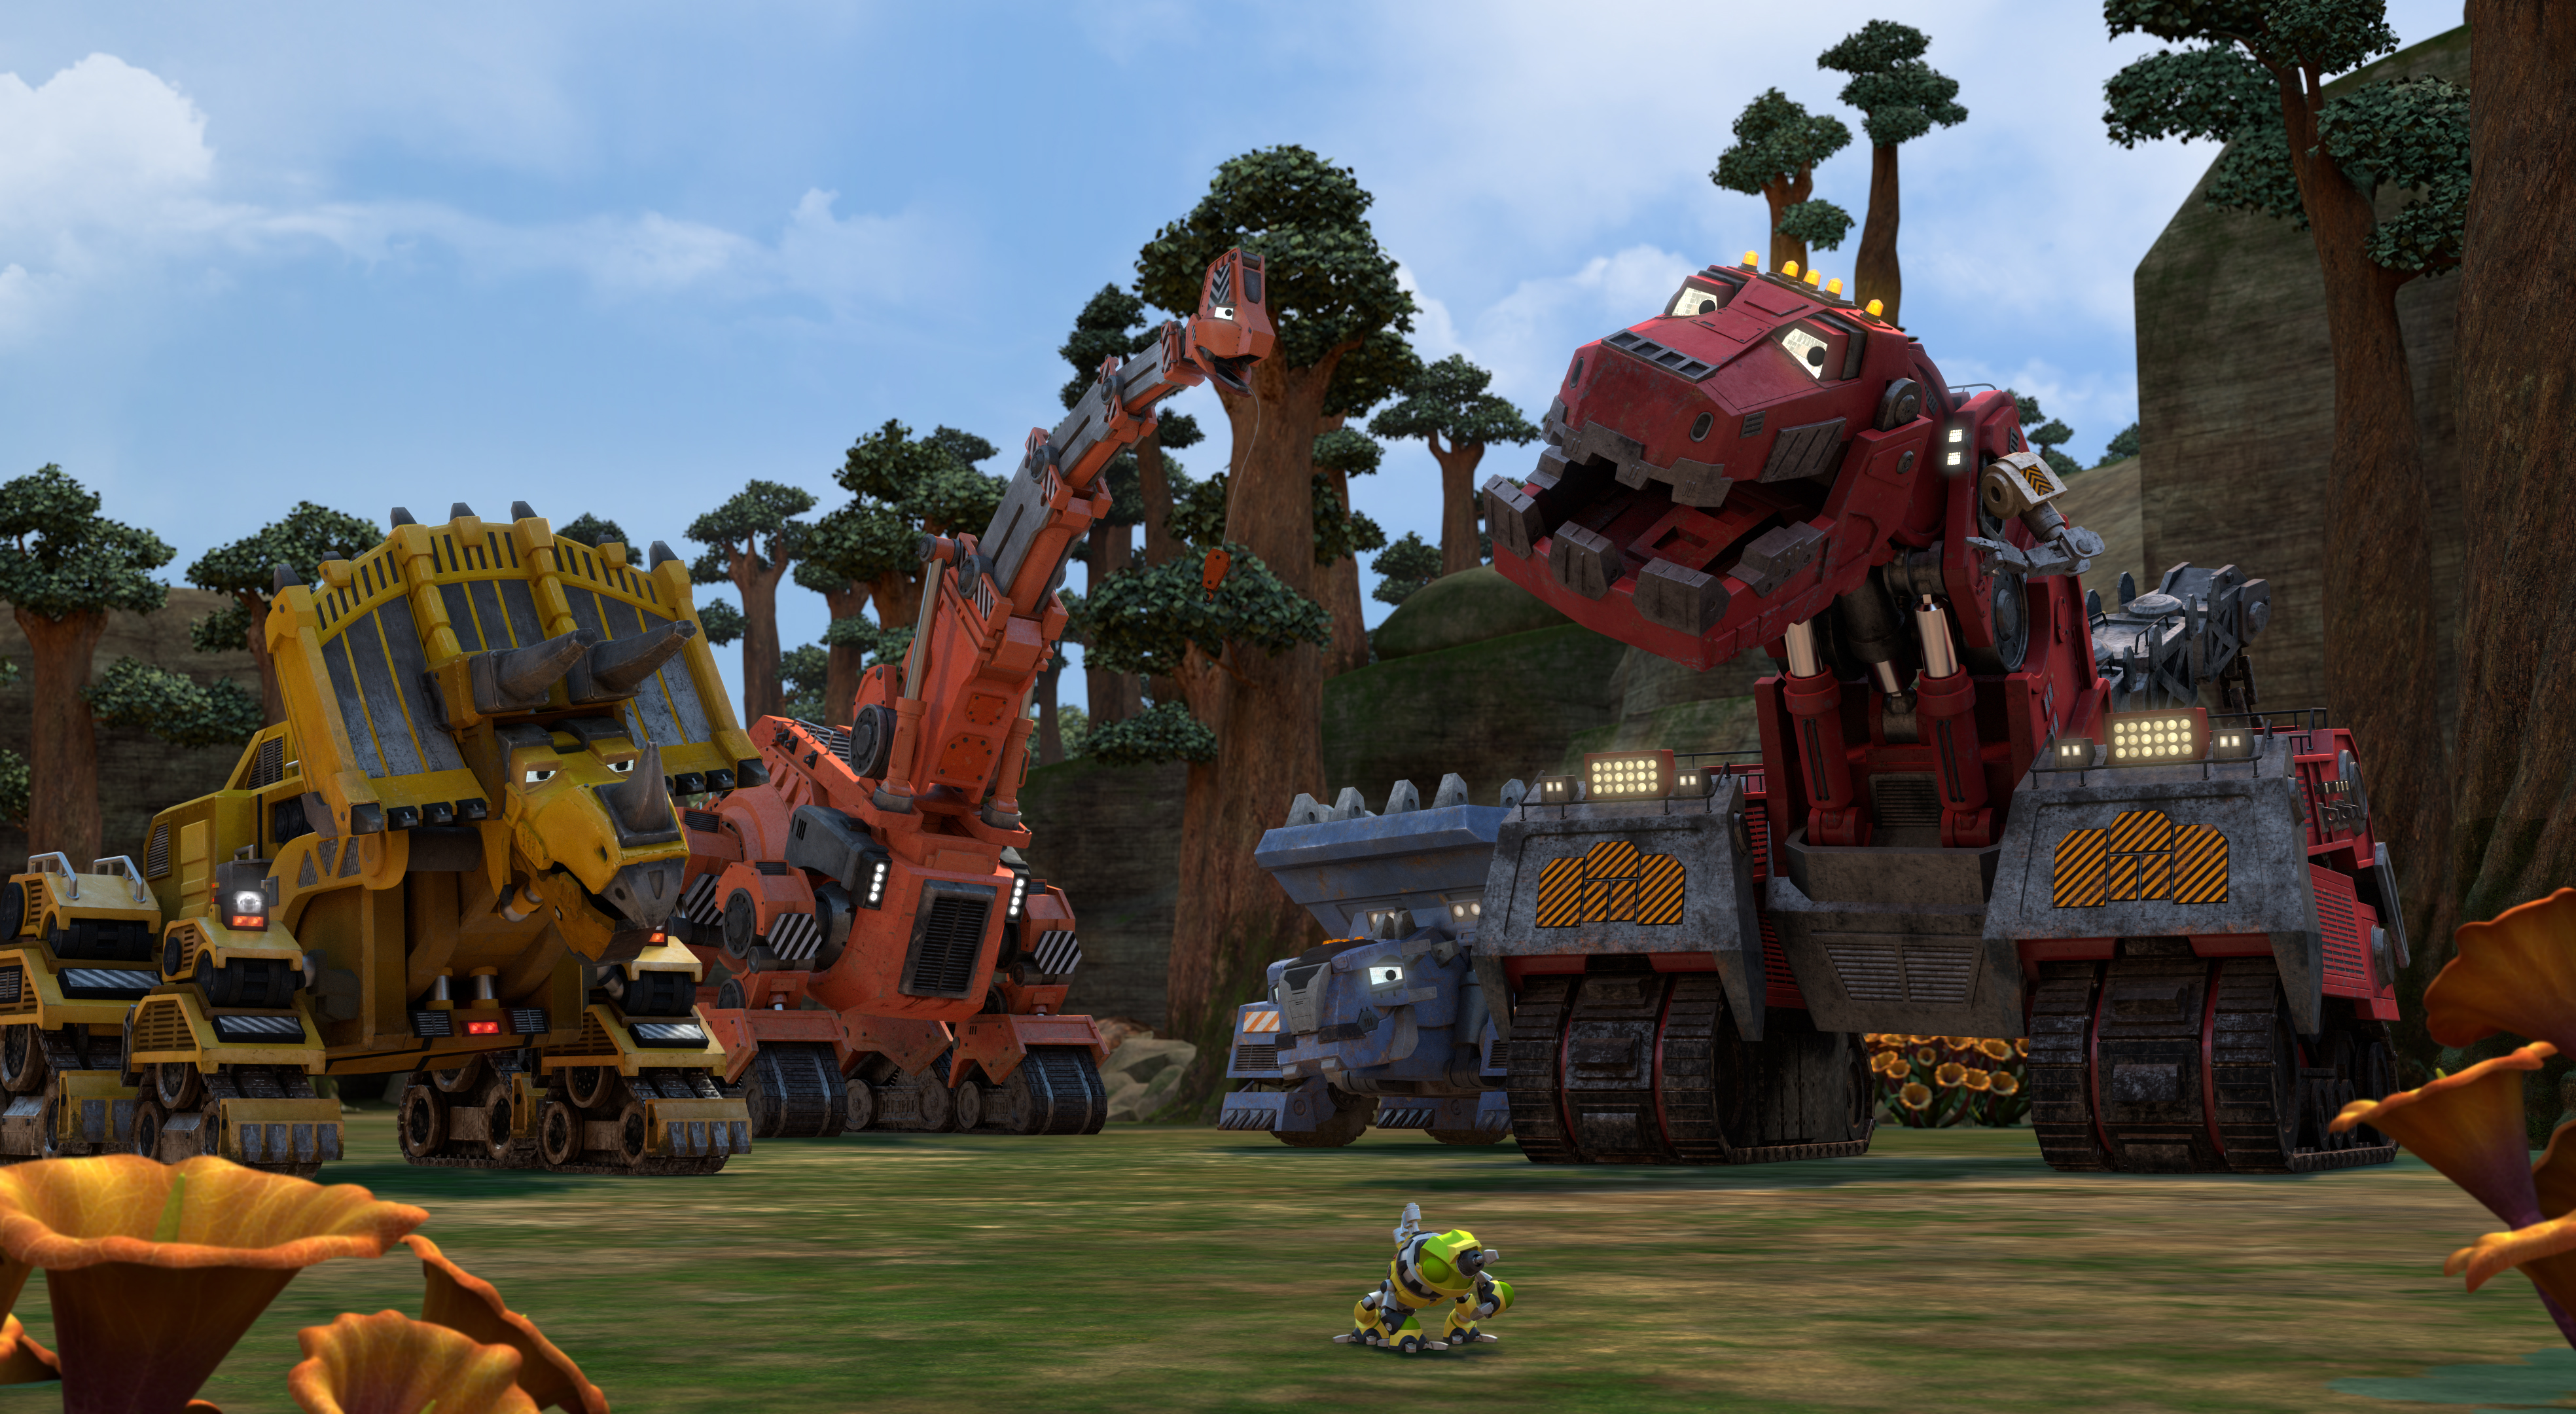 The Final Season of Dinotrux Supercharged is now on Netflix